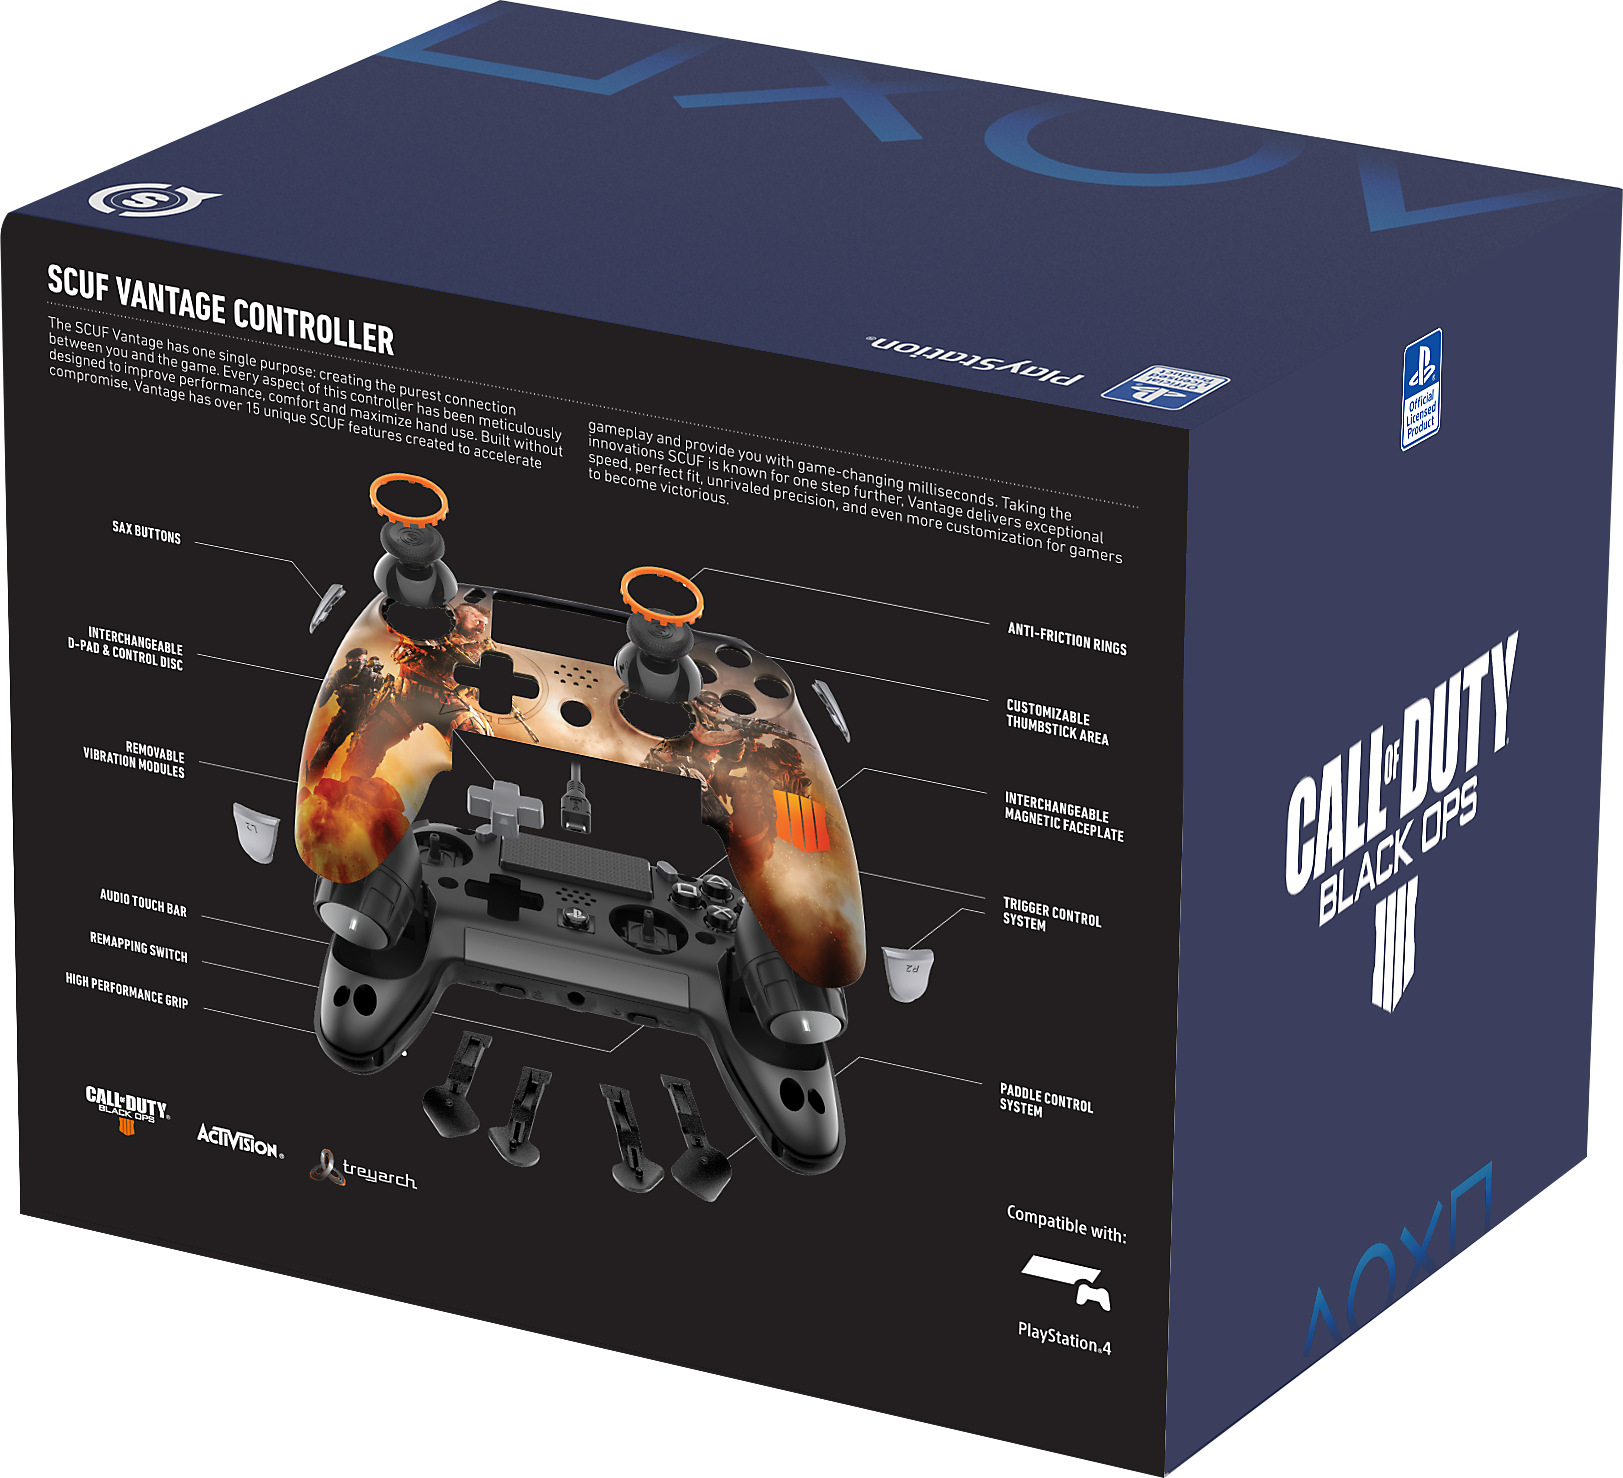 SCUF Vantage Black Ops 4 Limited Edition Packaging Shot 2